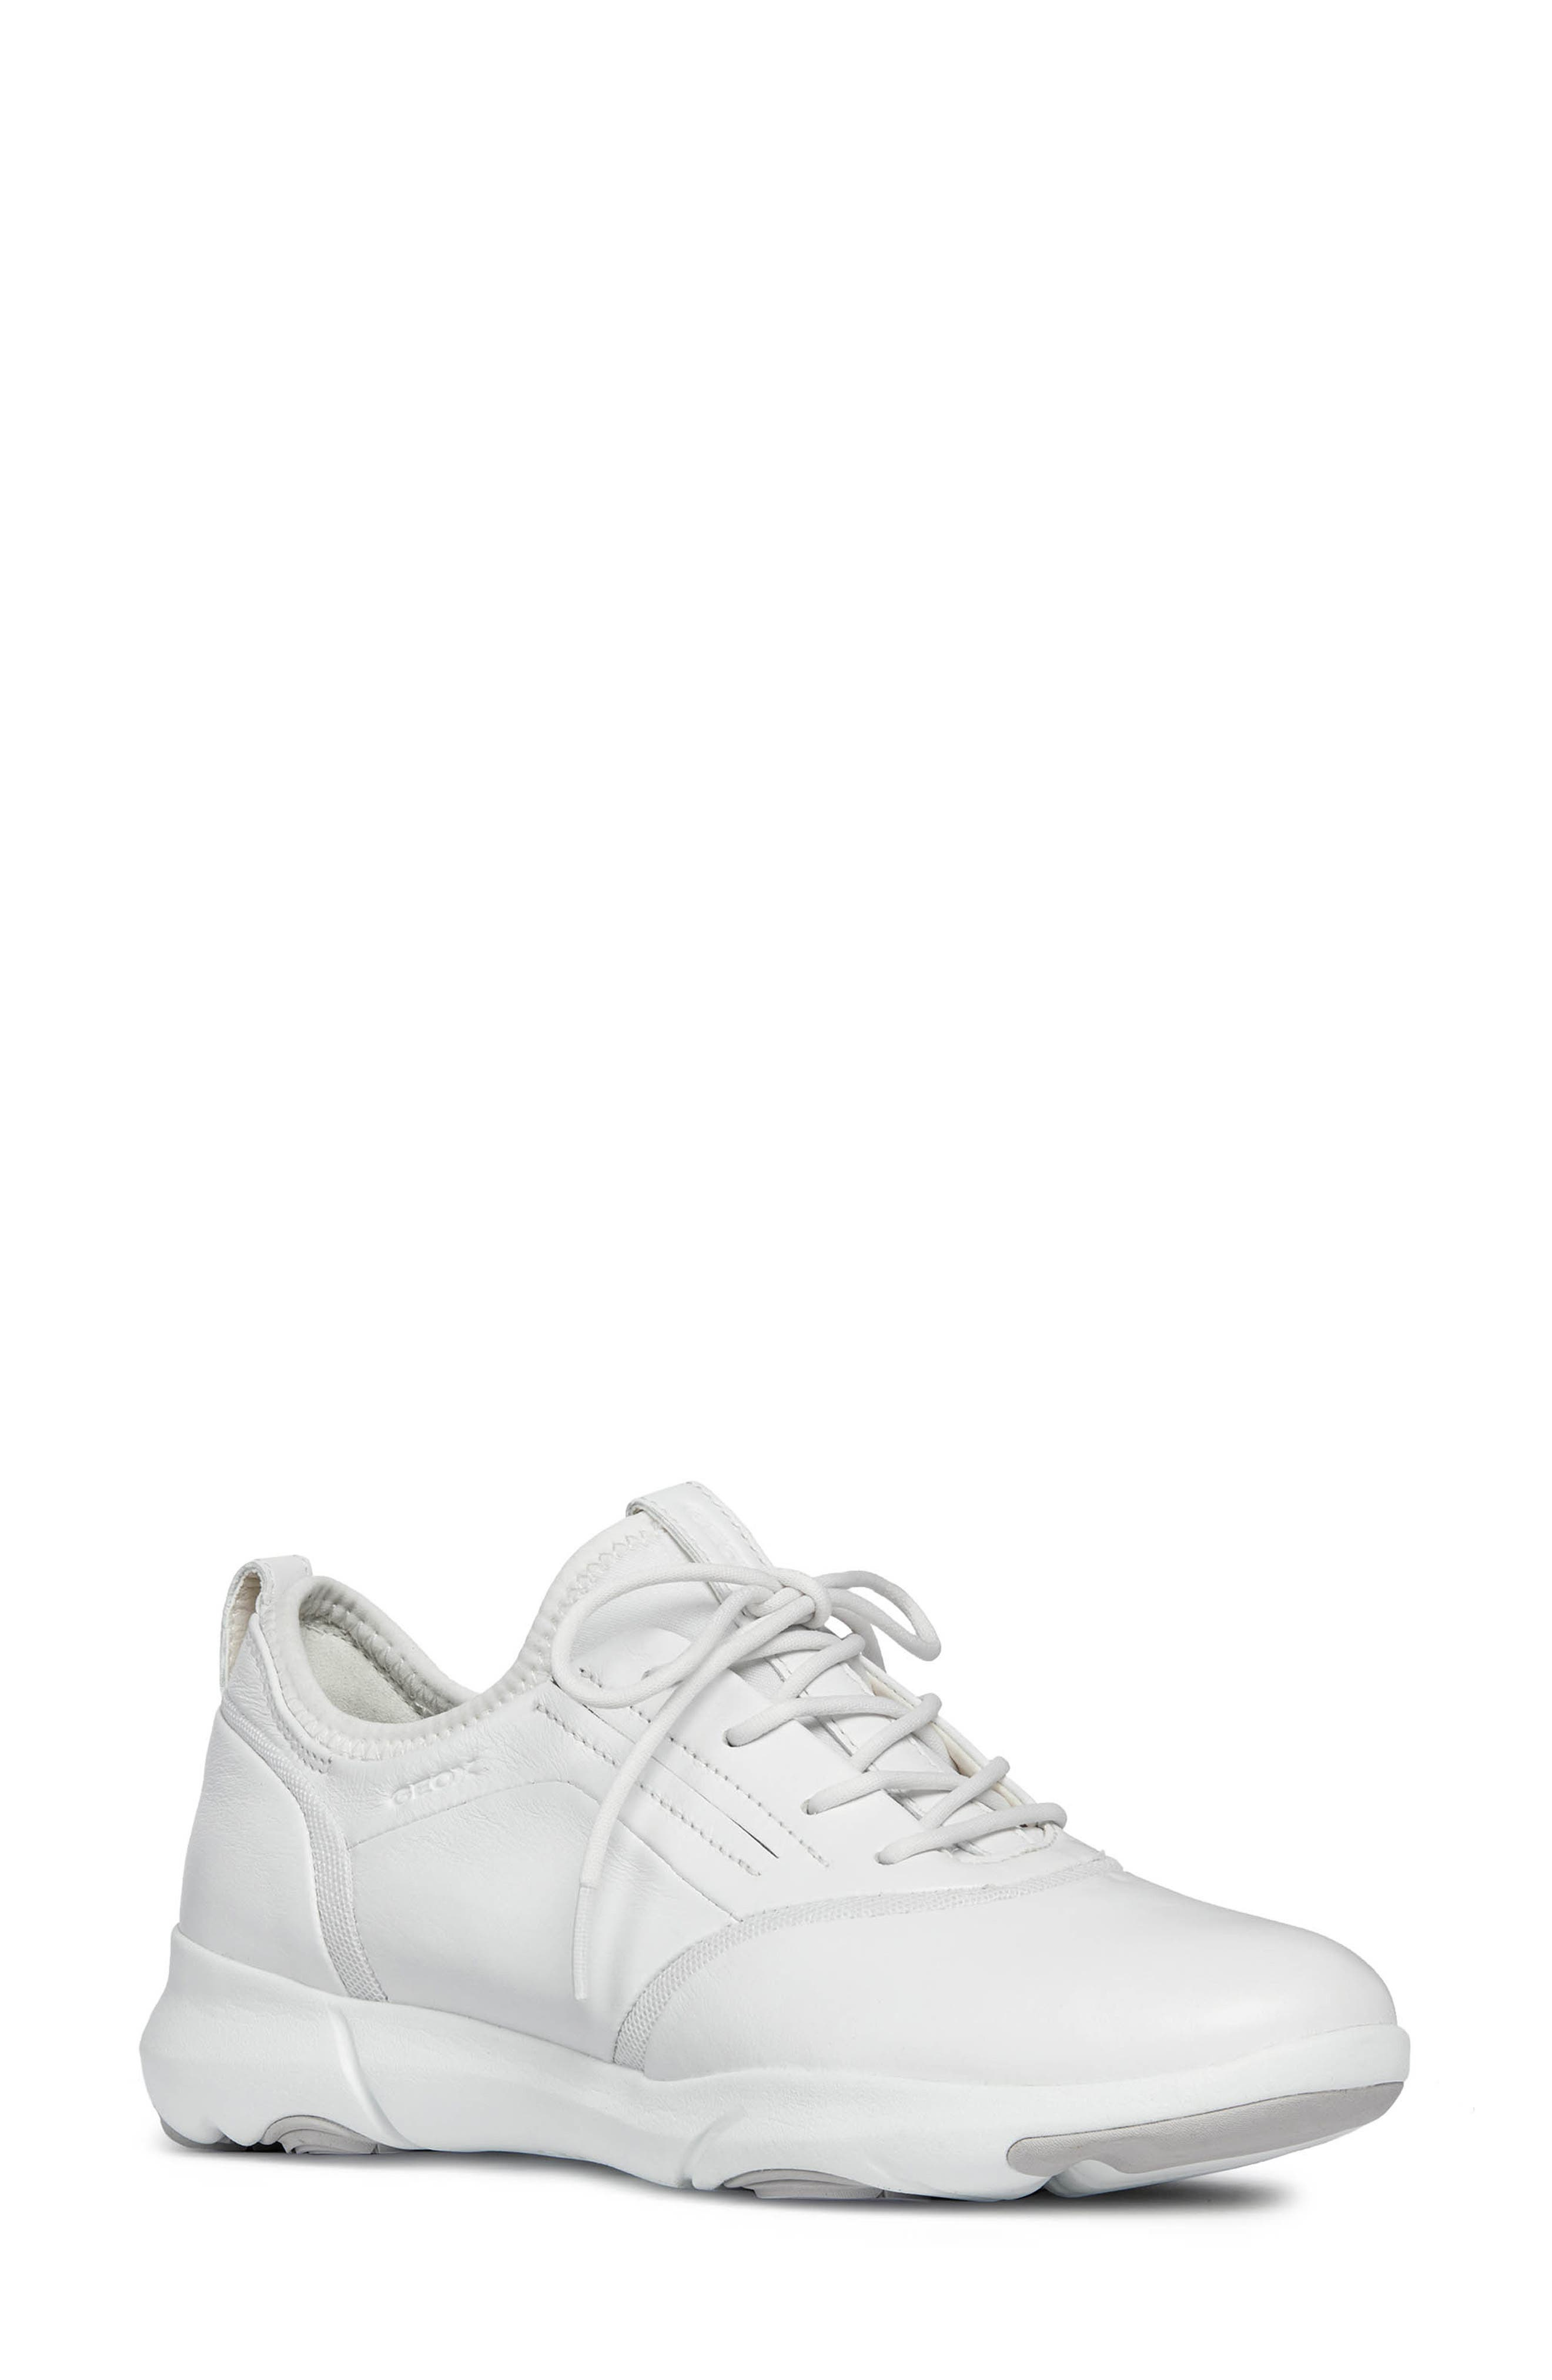 Nebula S 2 Low Top Sneaker,                         Main,                         color, WHITE LEATHER